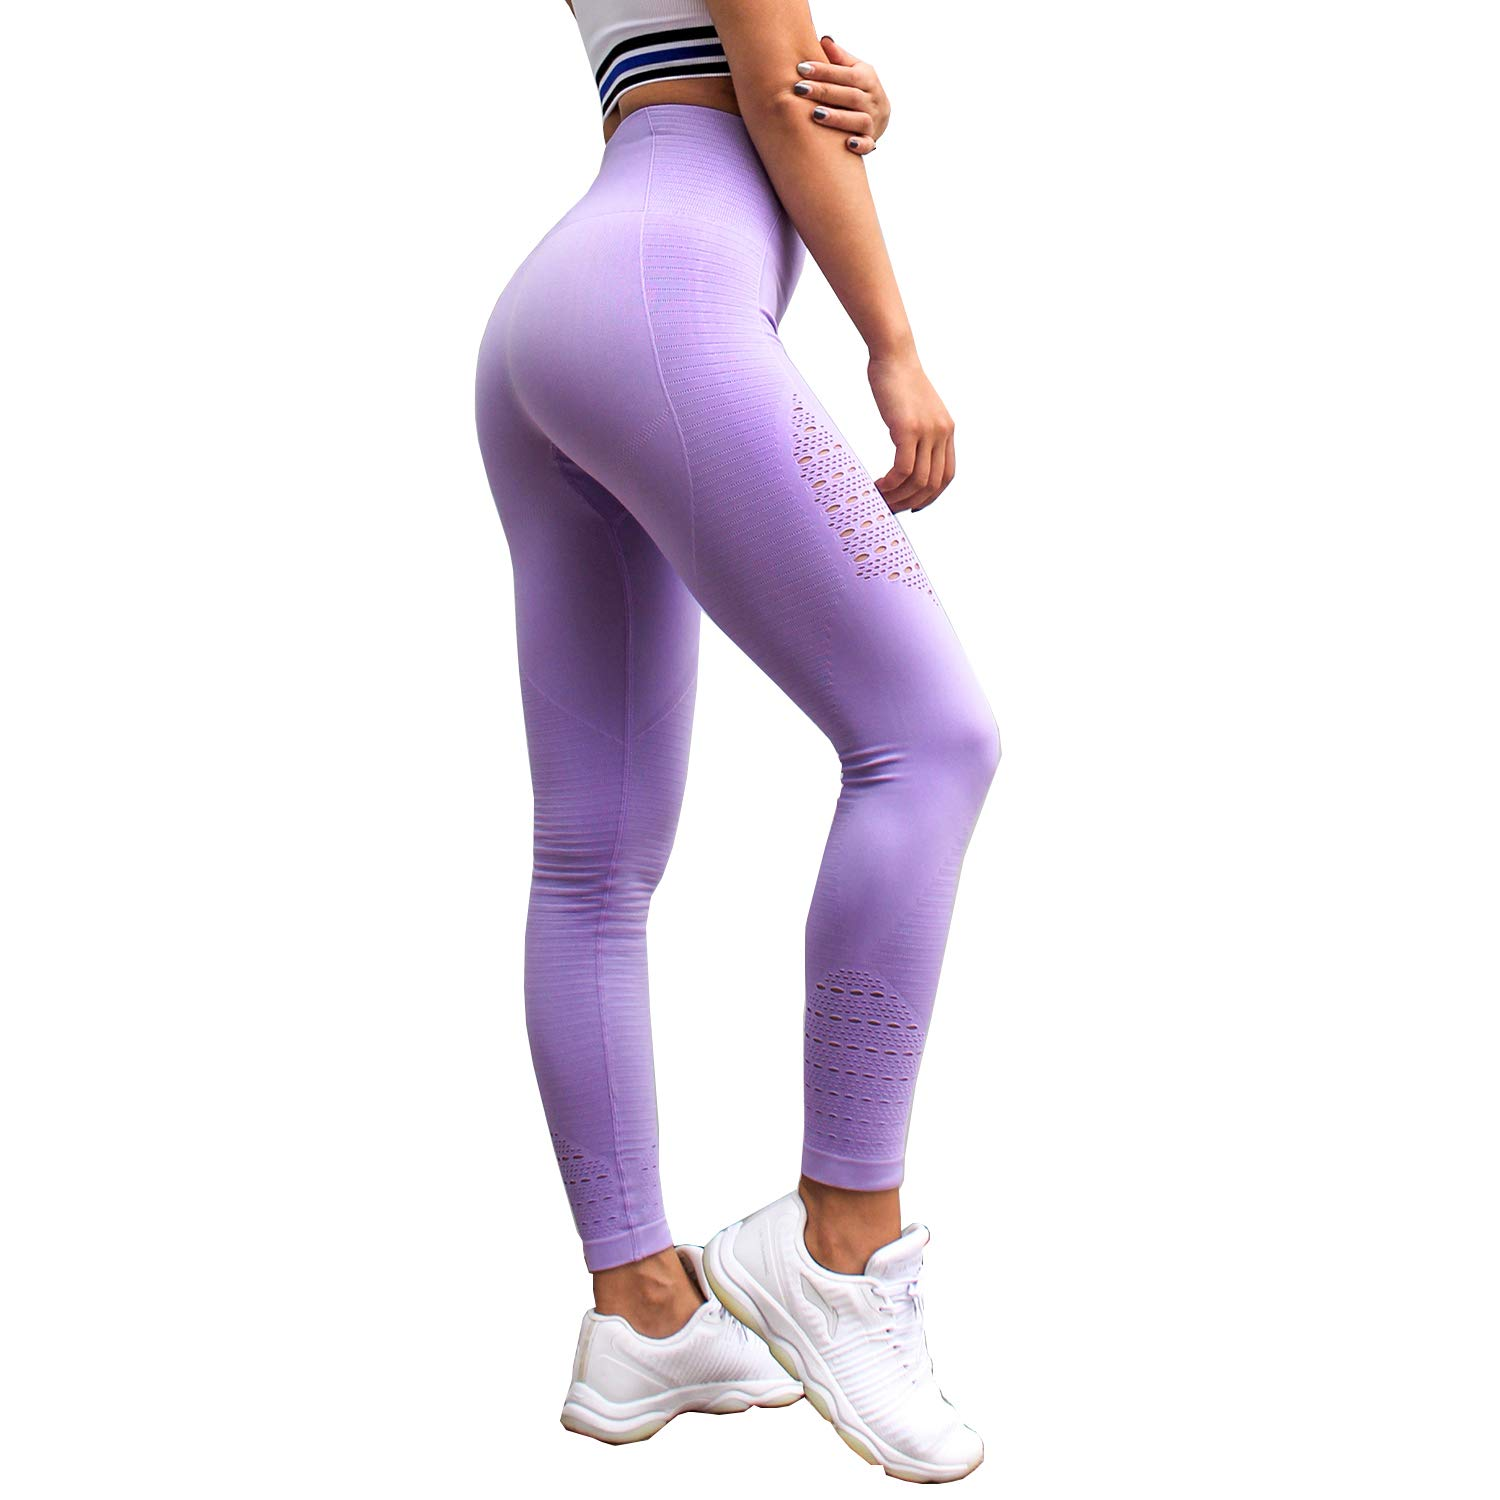 61671692c71c68 UK Women's Energy Seamless Leggings Gym Sportswear Yoga Pants Running  Training Fitness Activewear: Amazon.co.uk: Clothing